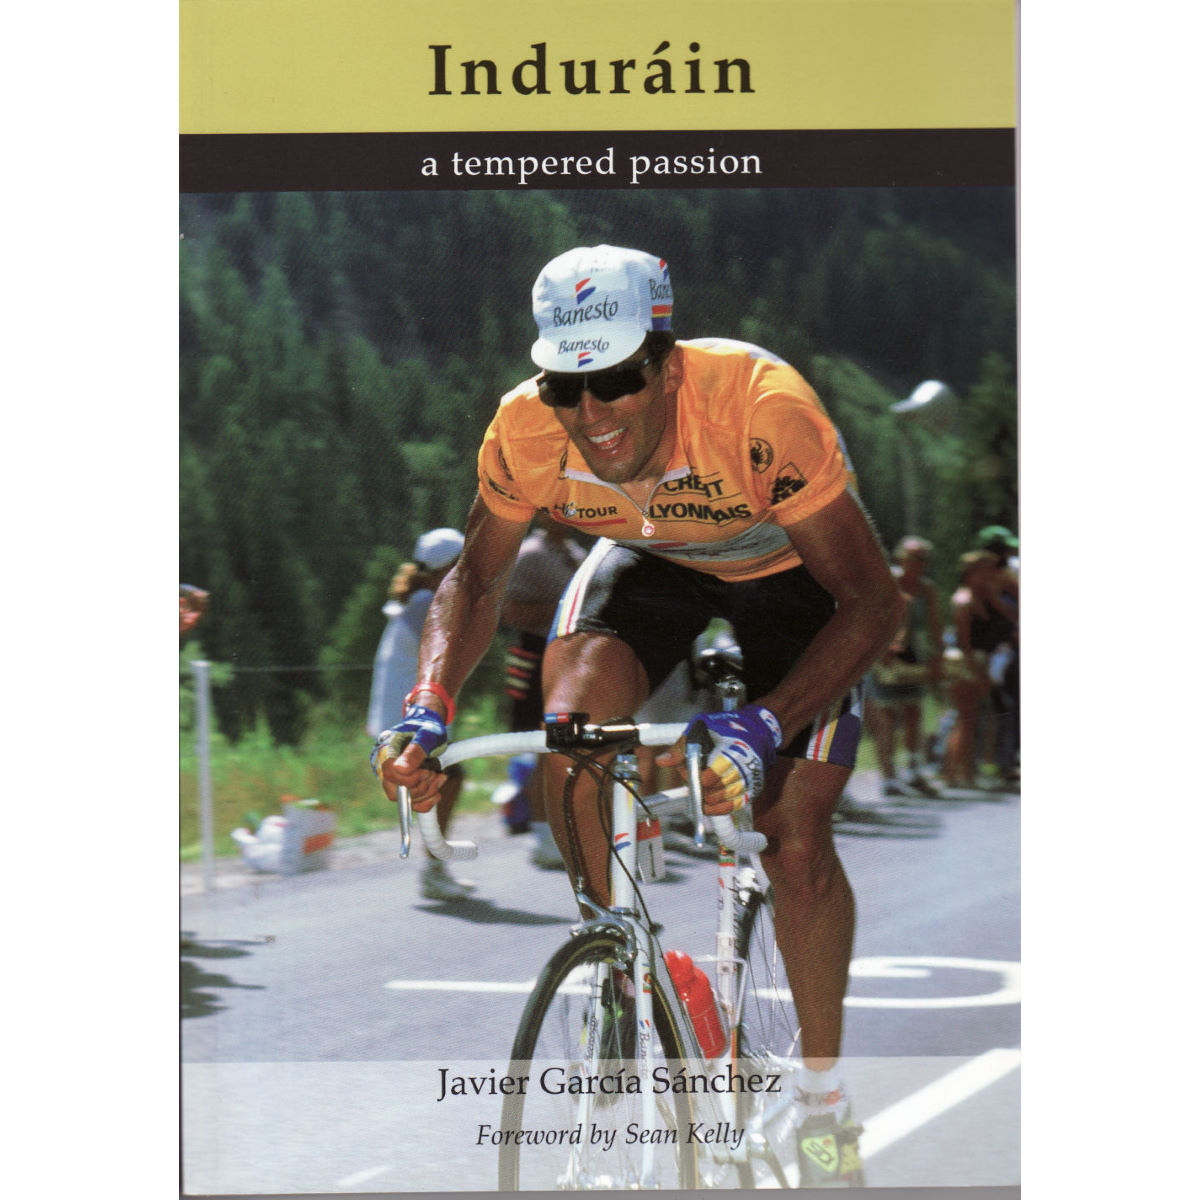 Image of Livre Cordee Indurain: A tempered Passion (en anglais) - Taille unique